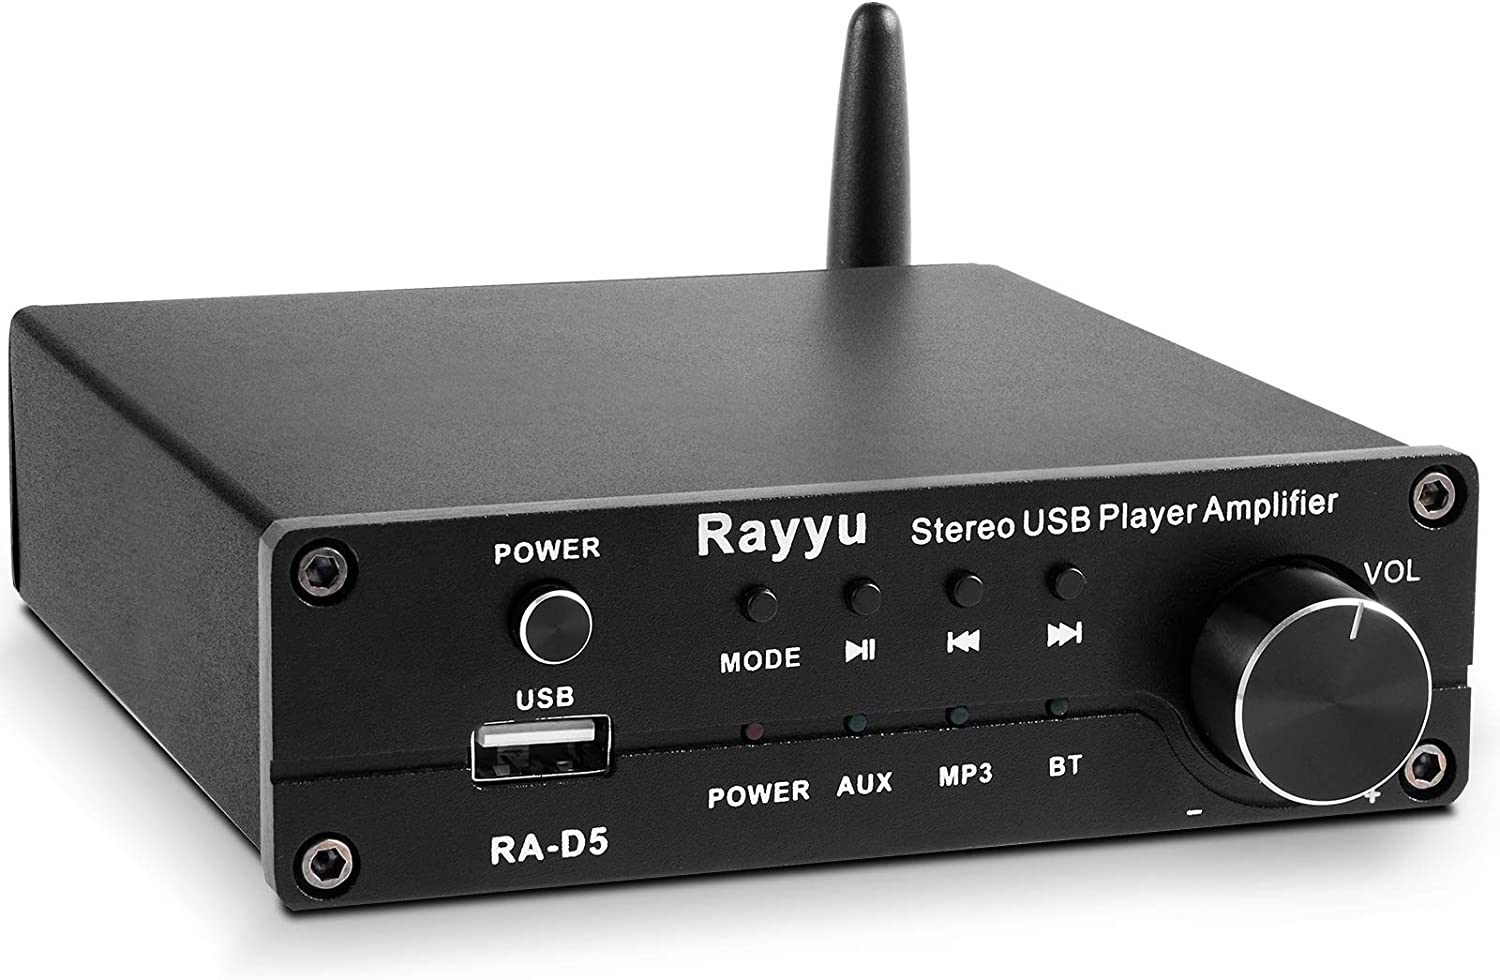 Rayyu Professional Mini Hi-Fi Digital MP3 Amplifier Mobile App Control 2x160W Bluetooth 5.0 Power Amplifier Home Theater Stereo Audio USB Player Amplifier 2 Channel - Power Adapter Not Included RA-D5